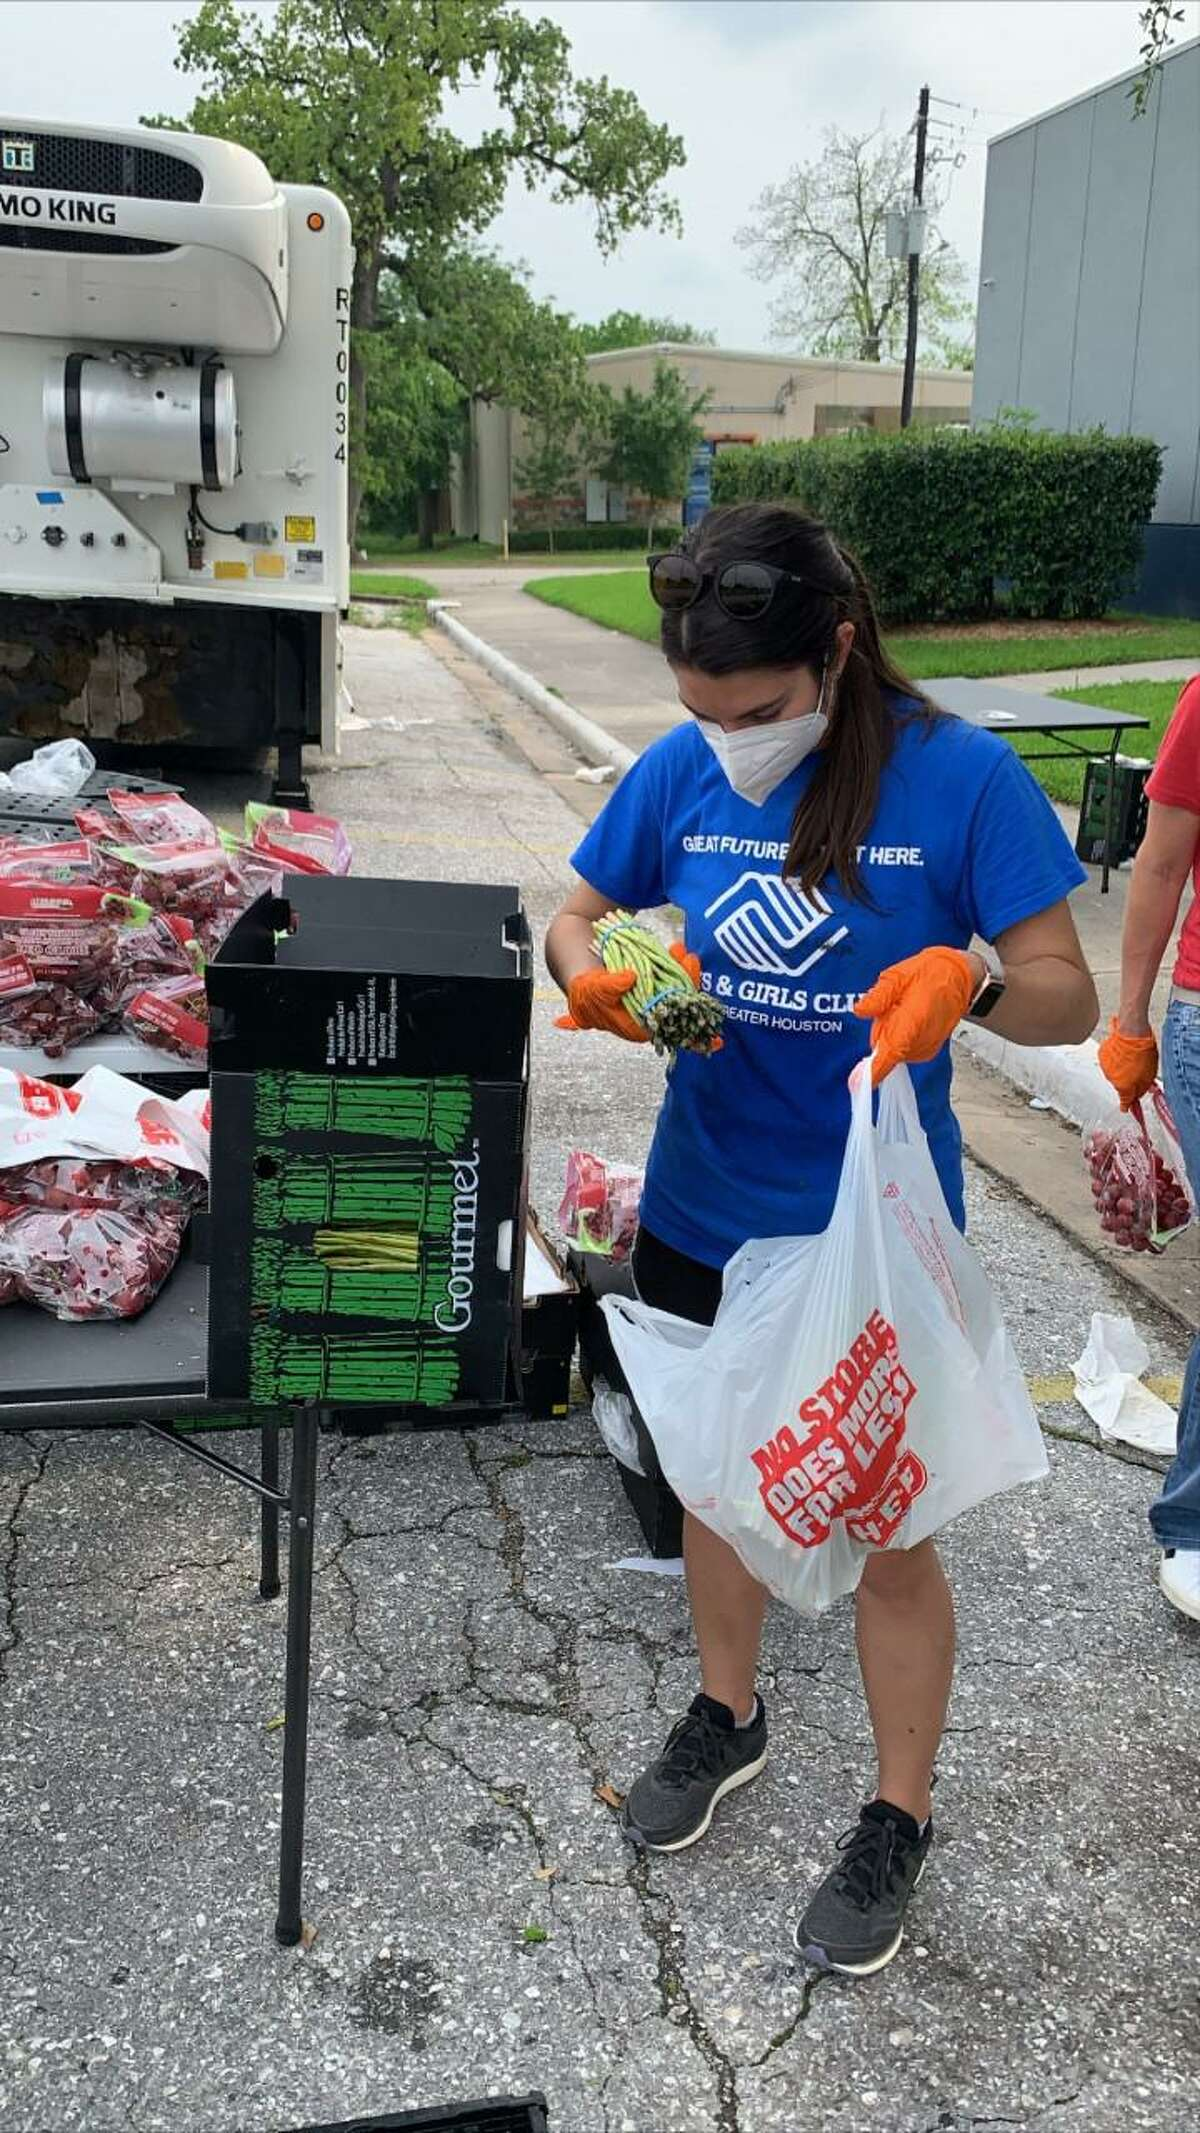 The Boy and Girls Club of Greater Houston distributes meals to families in need through approved locations in order to ensure these children get the food they need.